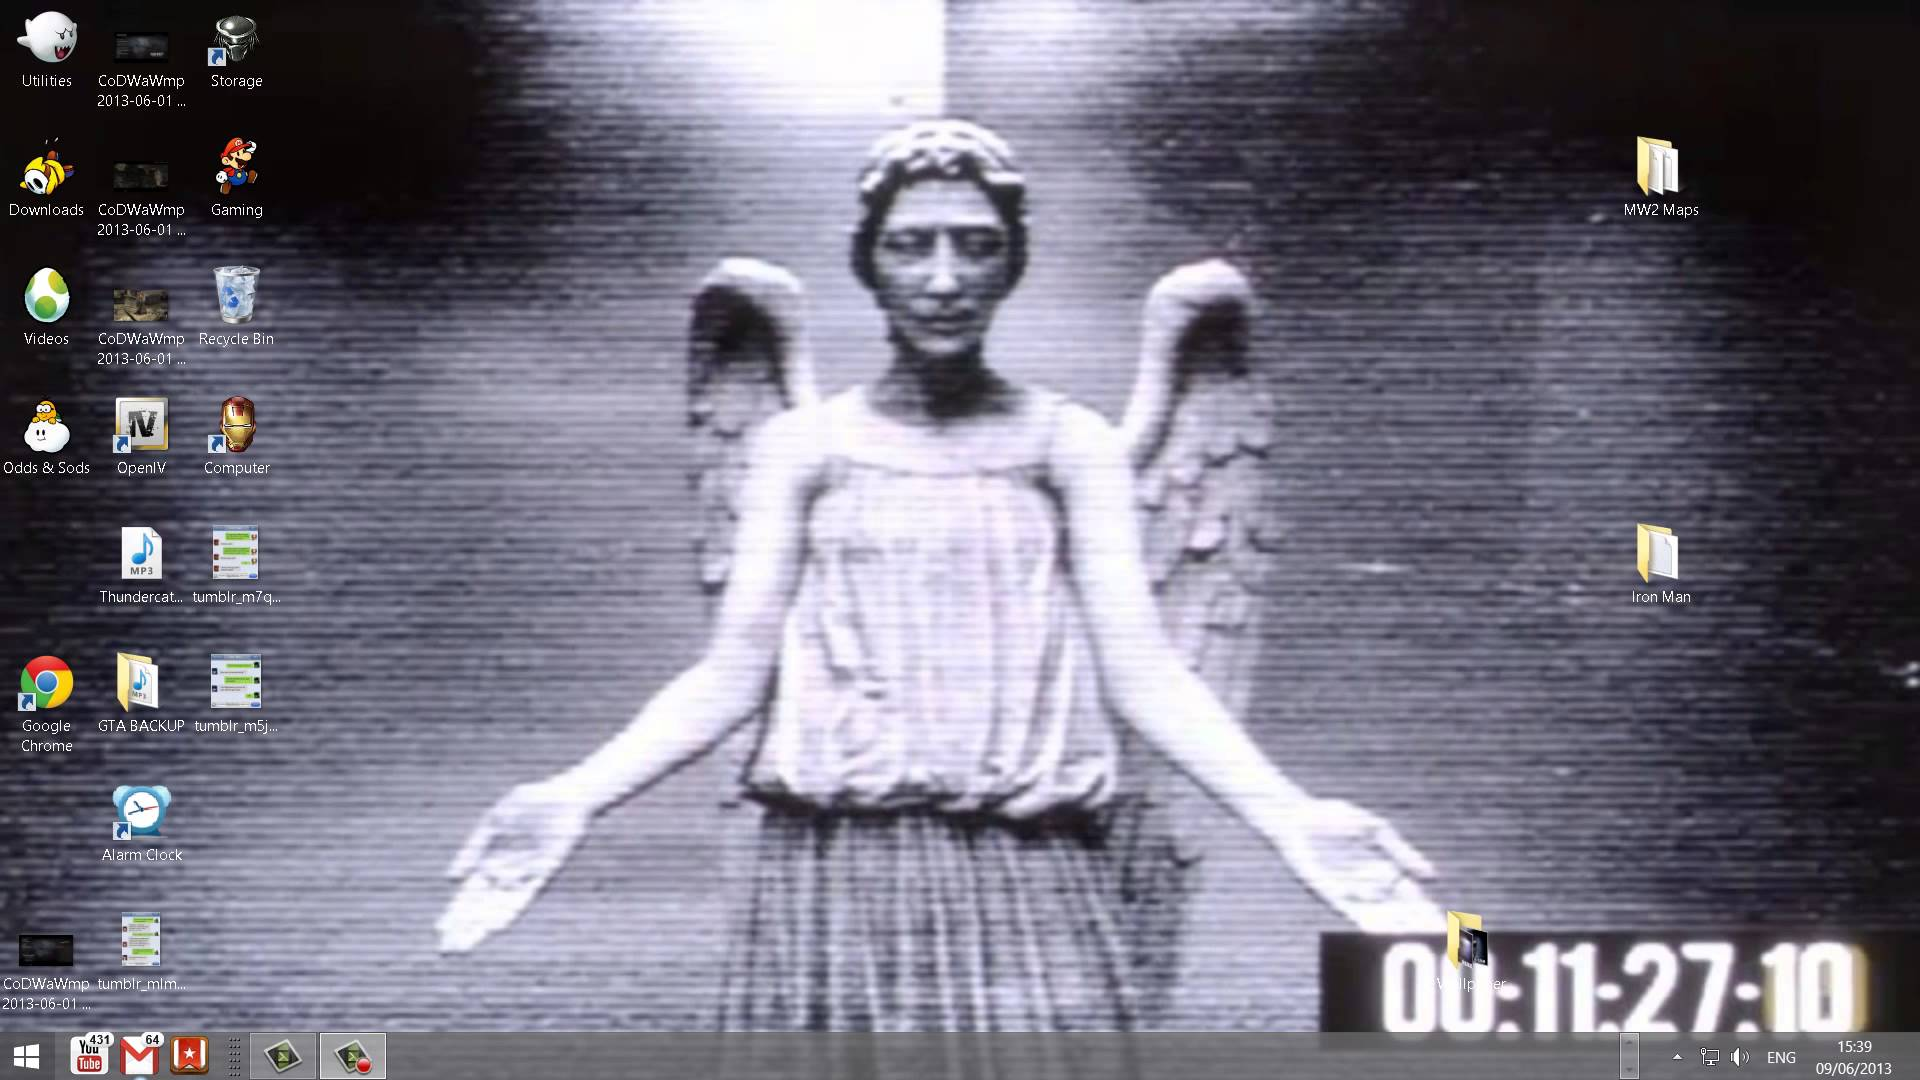 download Related Pictures weeping angels wallpaper prank 1920x1080